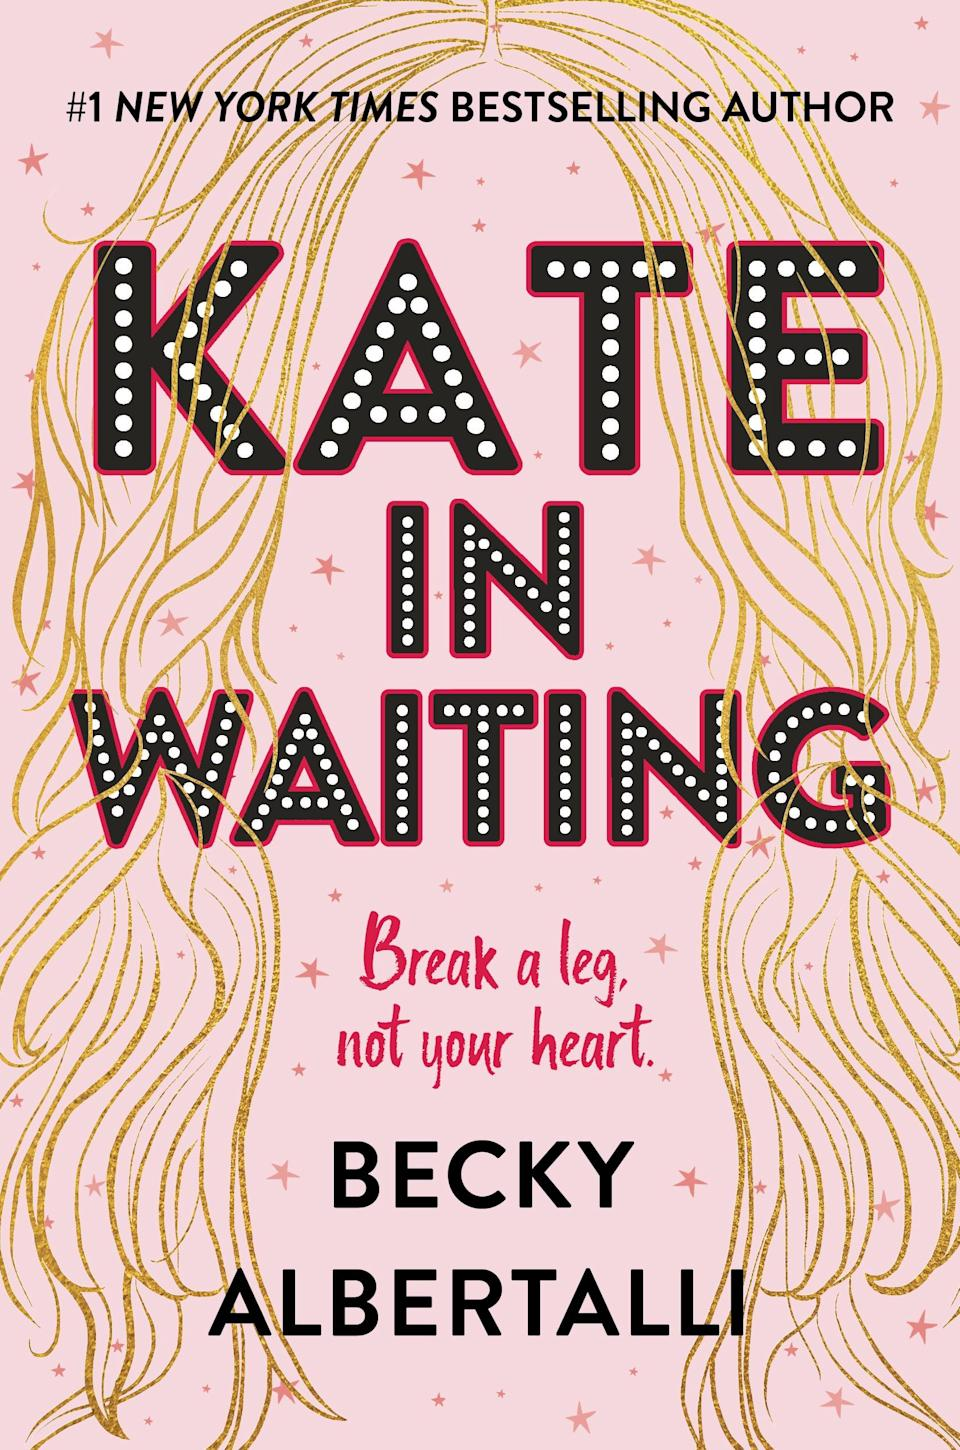 <p>Bestselling YA novelist Becky Albertelli is back with <strong><span>Kate in Waiting</span></strong>, the story of two drama-club BFFs who face the biggest test yet of their friendship: a very cute guy. Kate and Anderson are the very best of friends, and they're used to crushing on the same guys (from afar, of course). When their latest crush Matt transfers to their school, though, Kate starts to have real feelings for him - but Anderson does too.</p> <p><em>Out April 20</em> </p>